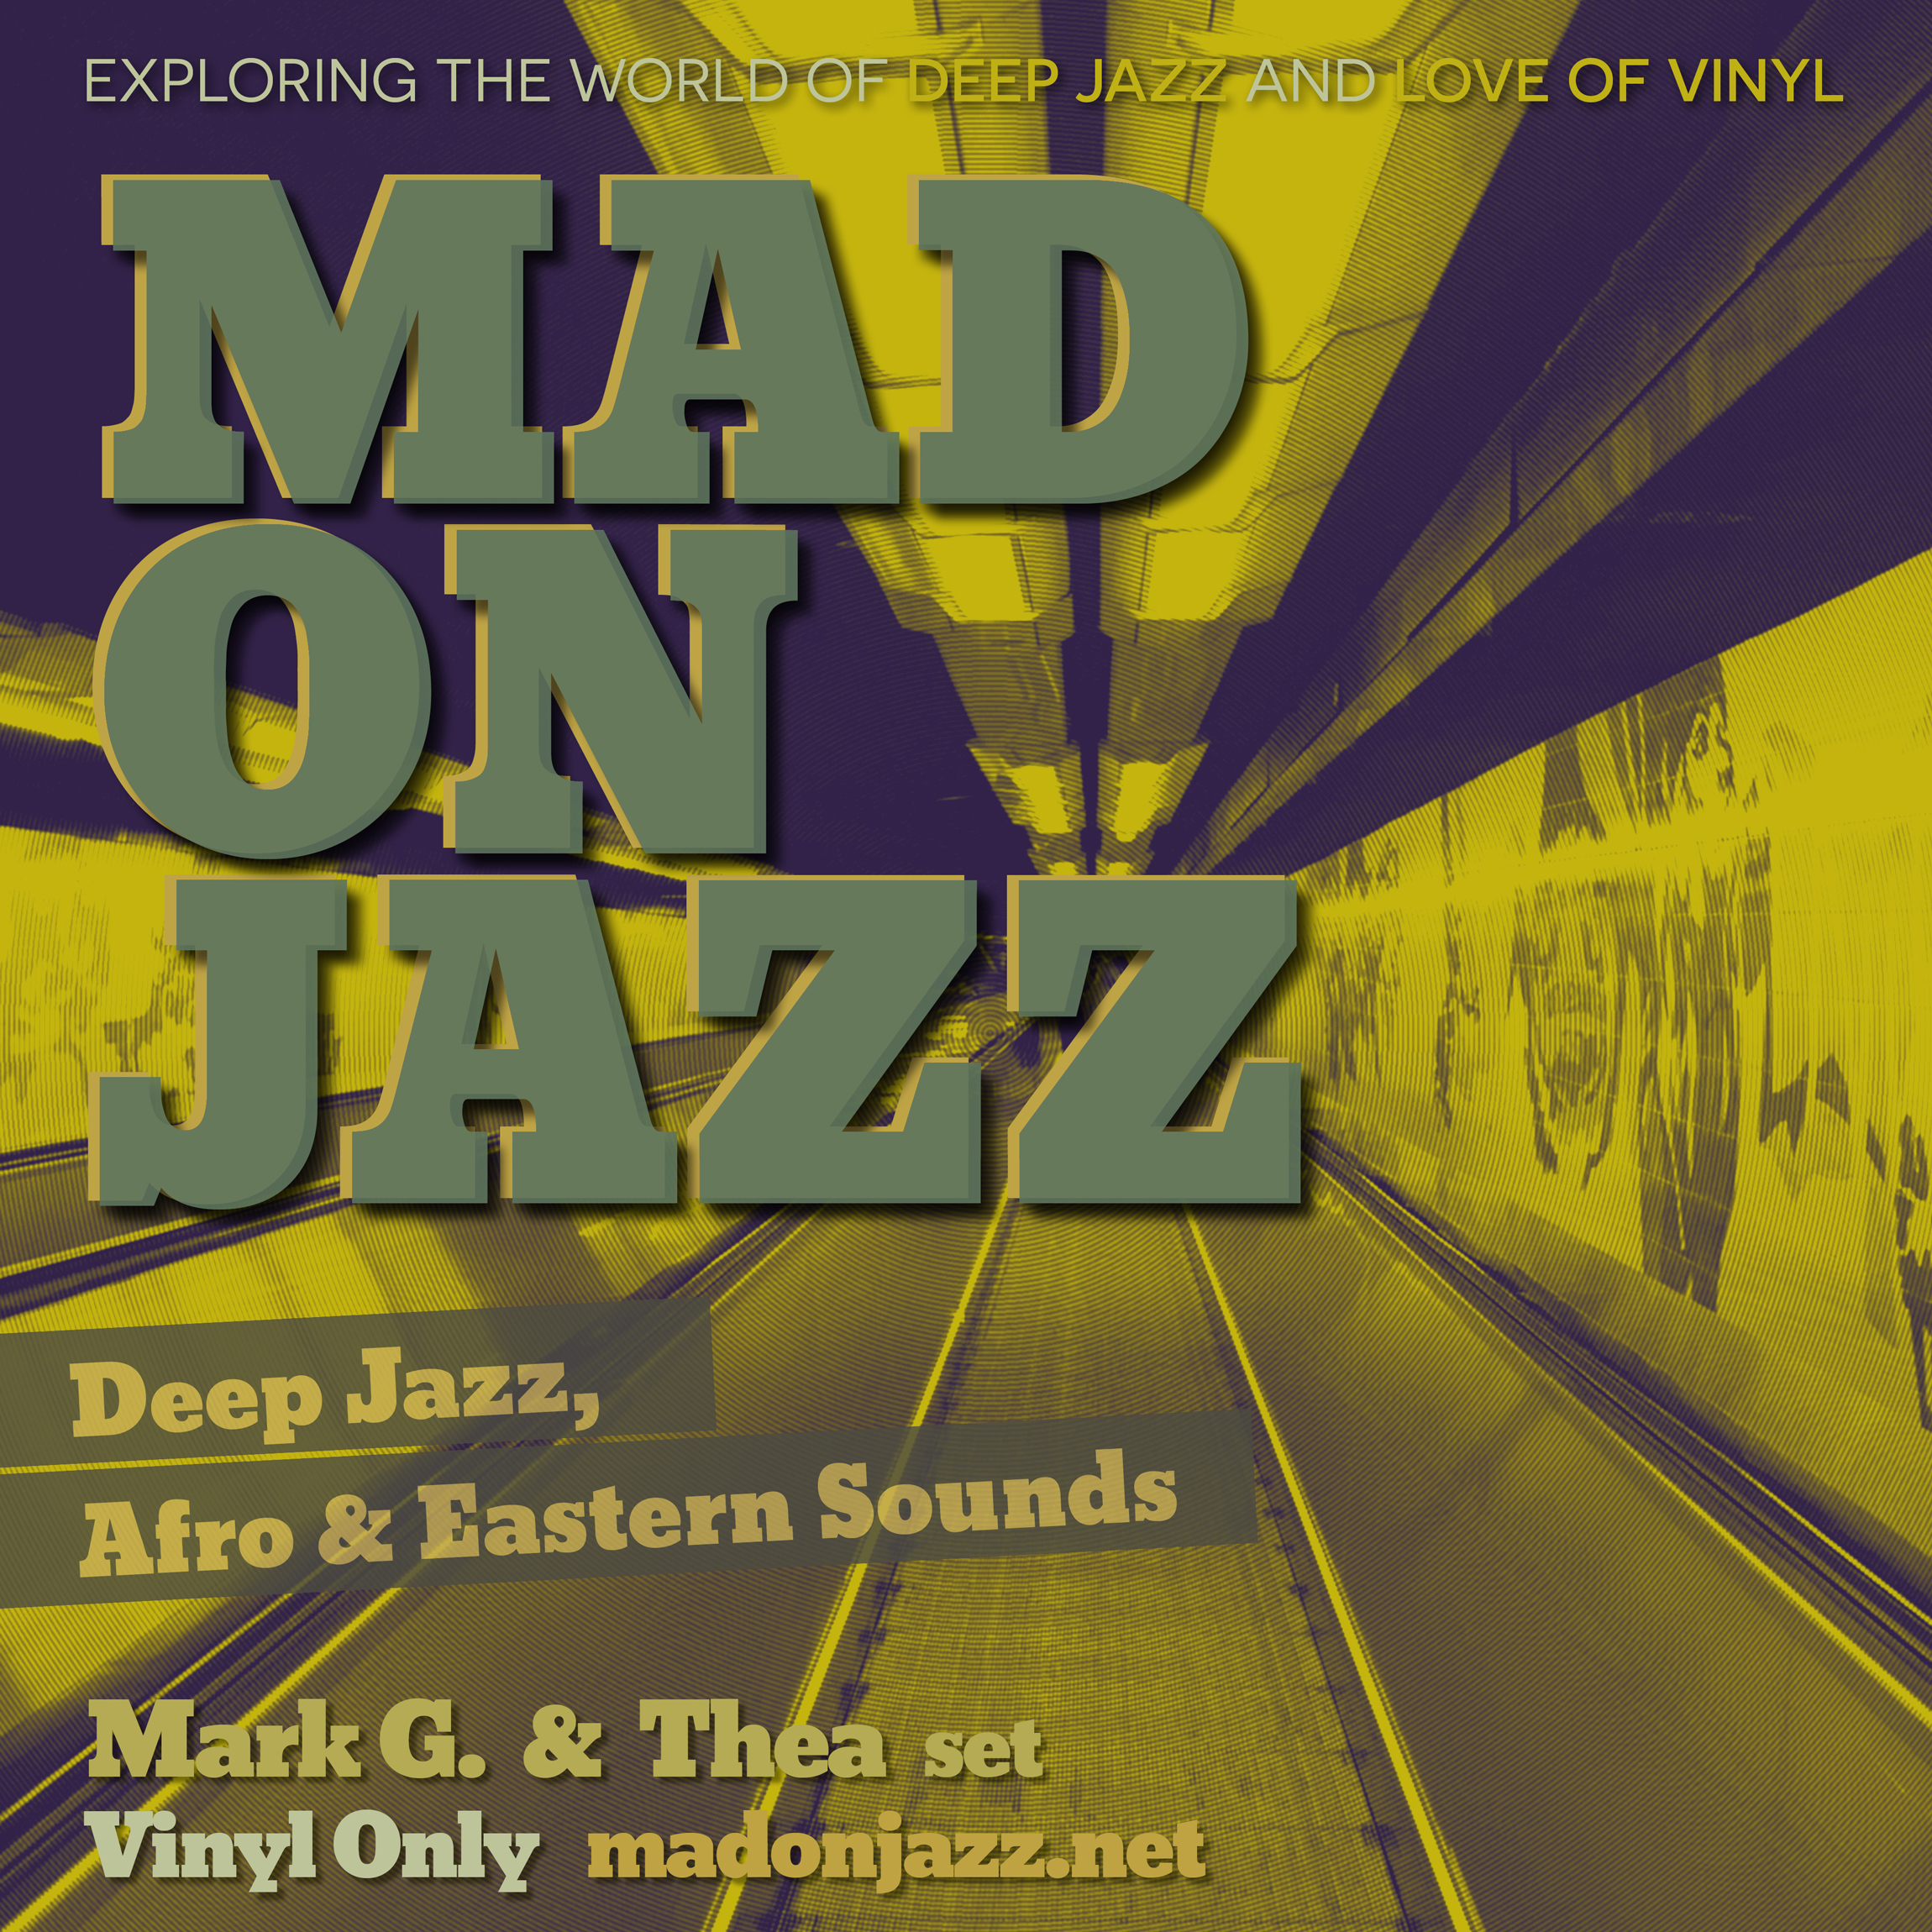 MADONJAZZ: Deep Jazz , Afro & Eastern Sounds w/ Mark G. & Thea